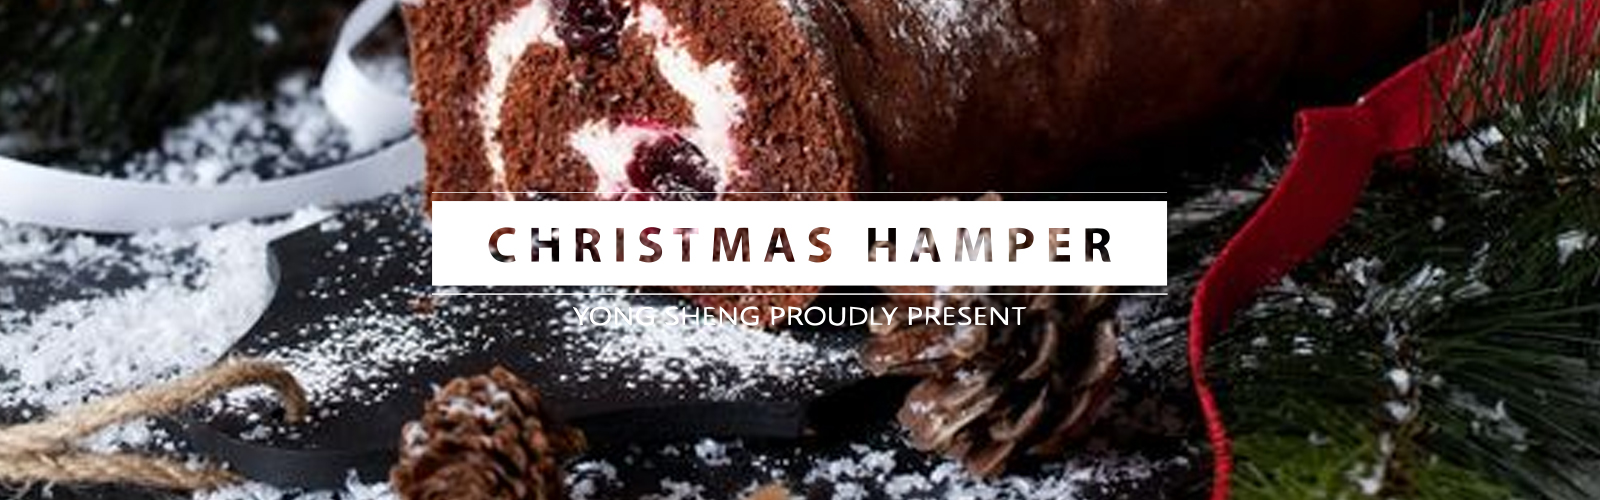 Christmas Hamper Banner